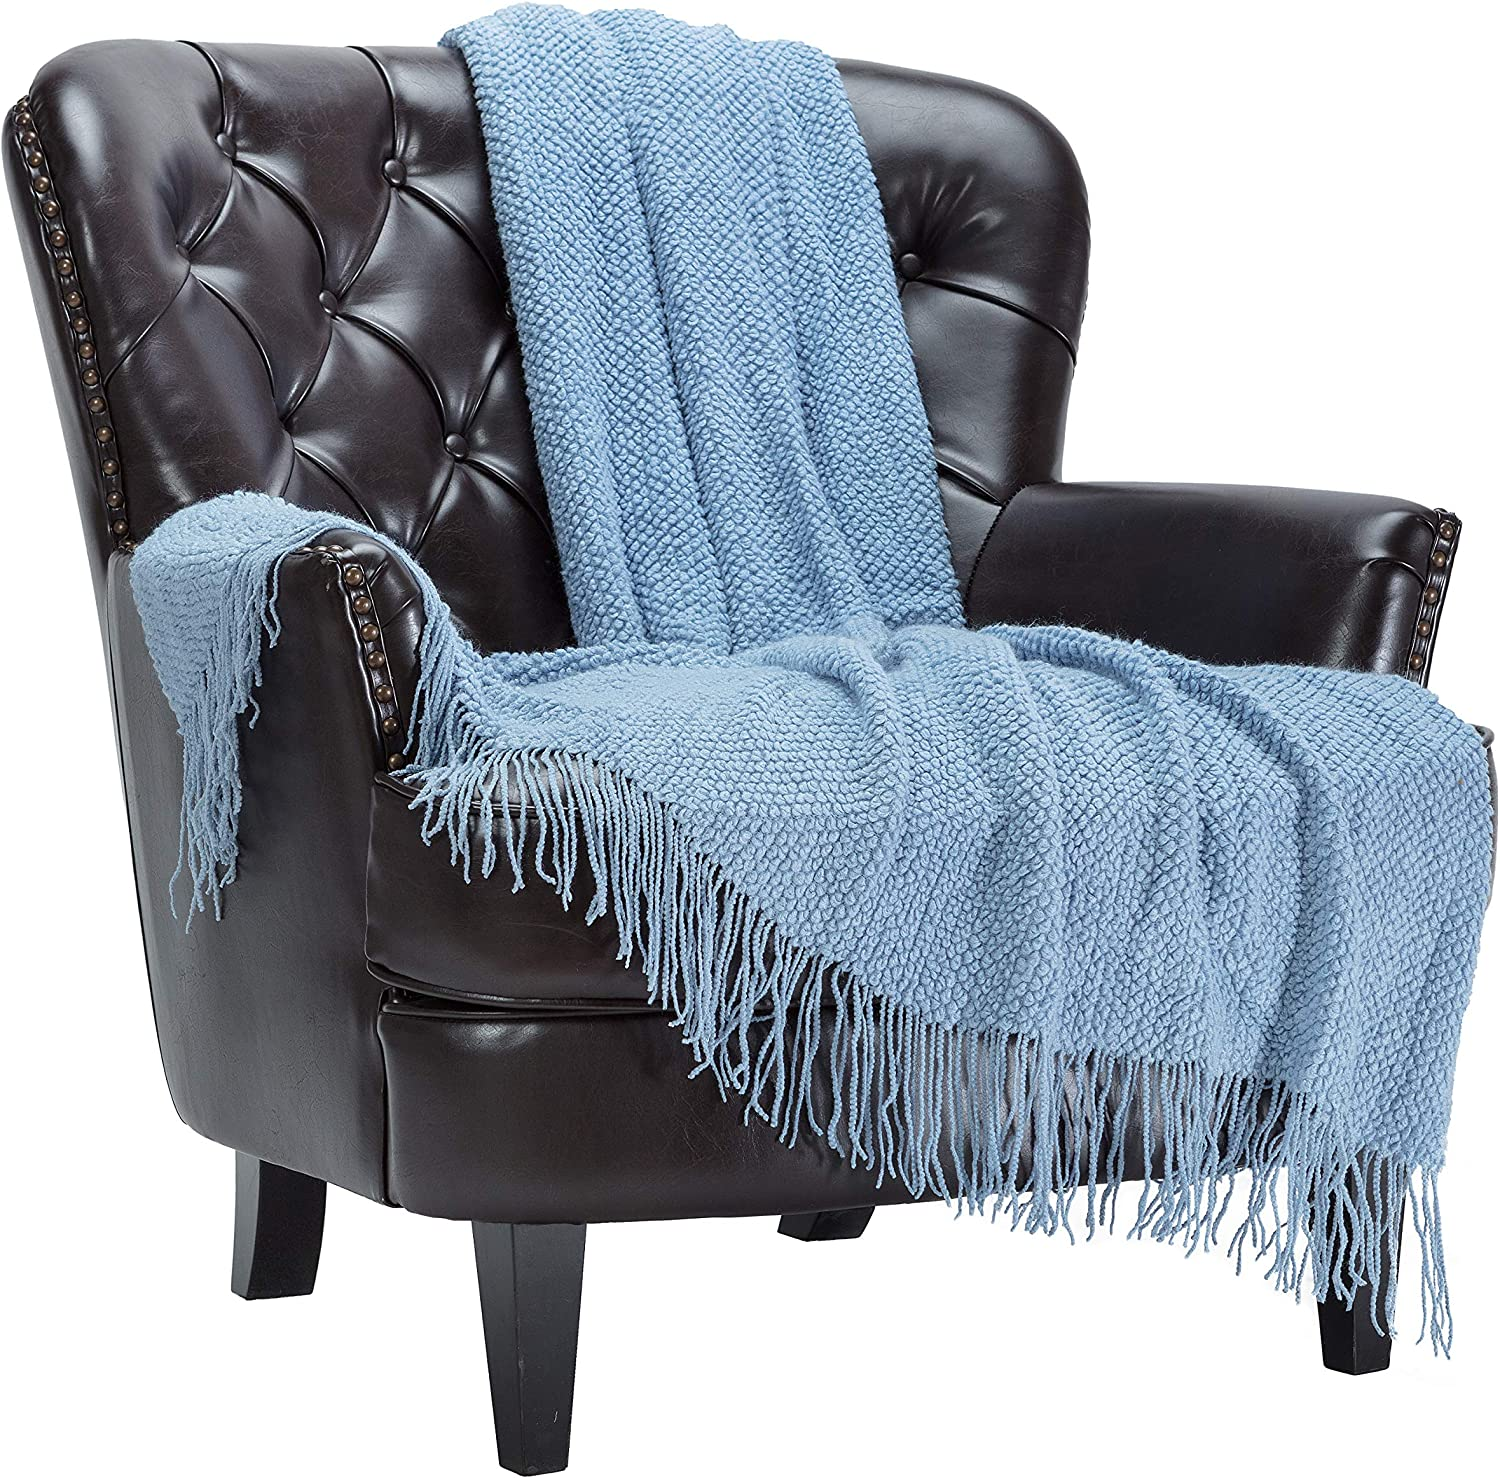 Chanasya Direct sale of manufacturer Textured Knitted Light Blue With Max 62% OFF Tassel Throw - Blanket